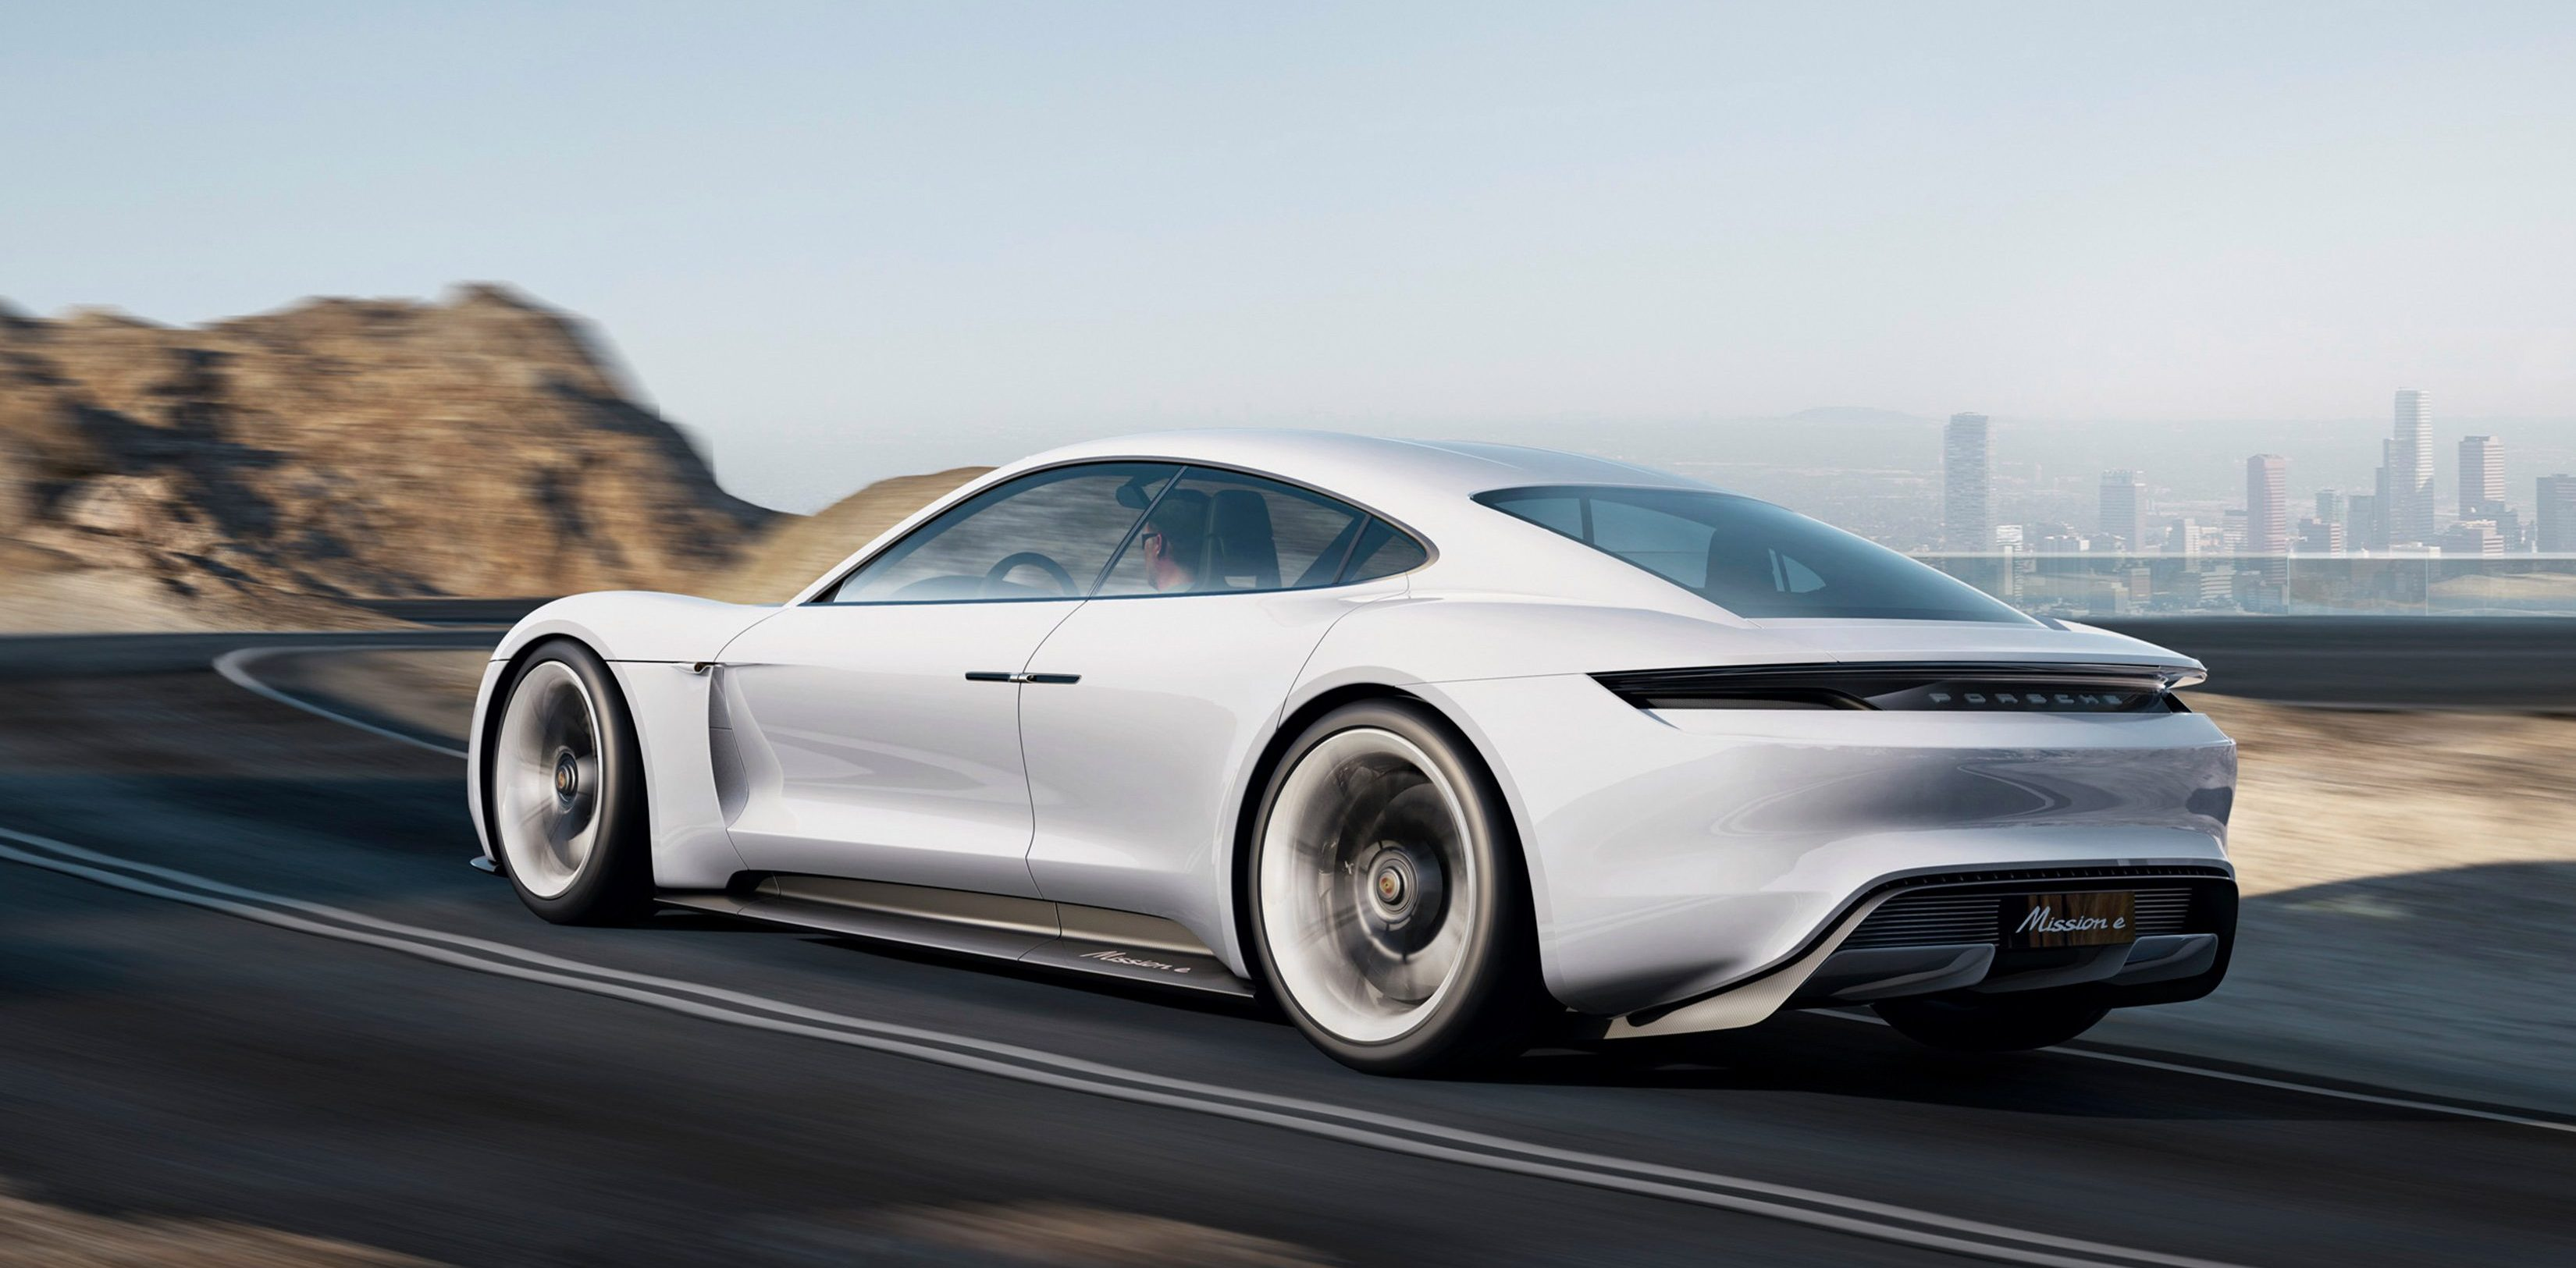 The All Electric Porsche Taycan U0027drives Like A Porsche, Looks Like A  Porsche, And Feels Like A Porscheu0027, Says Head Of EV Programs